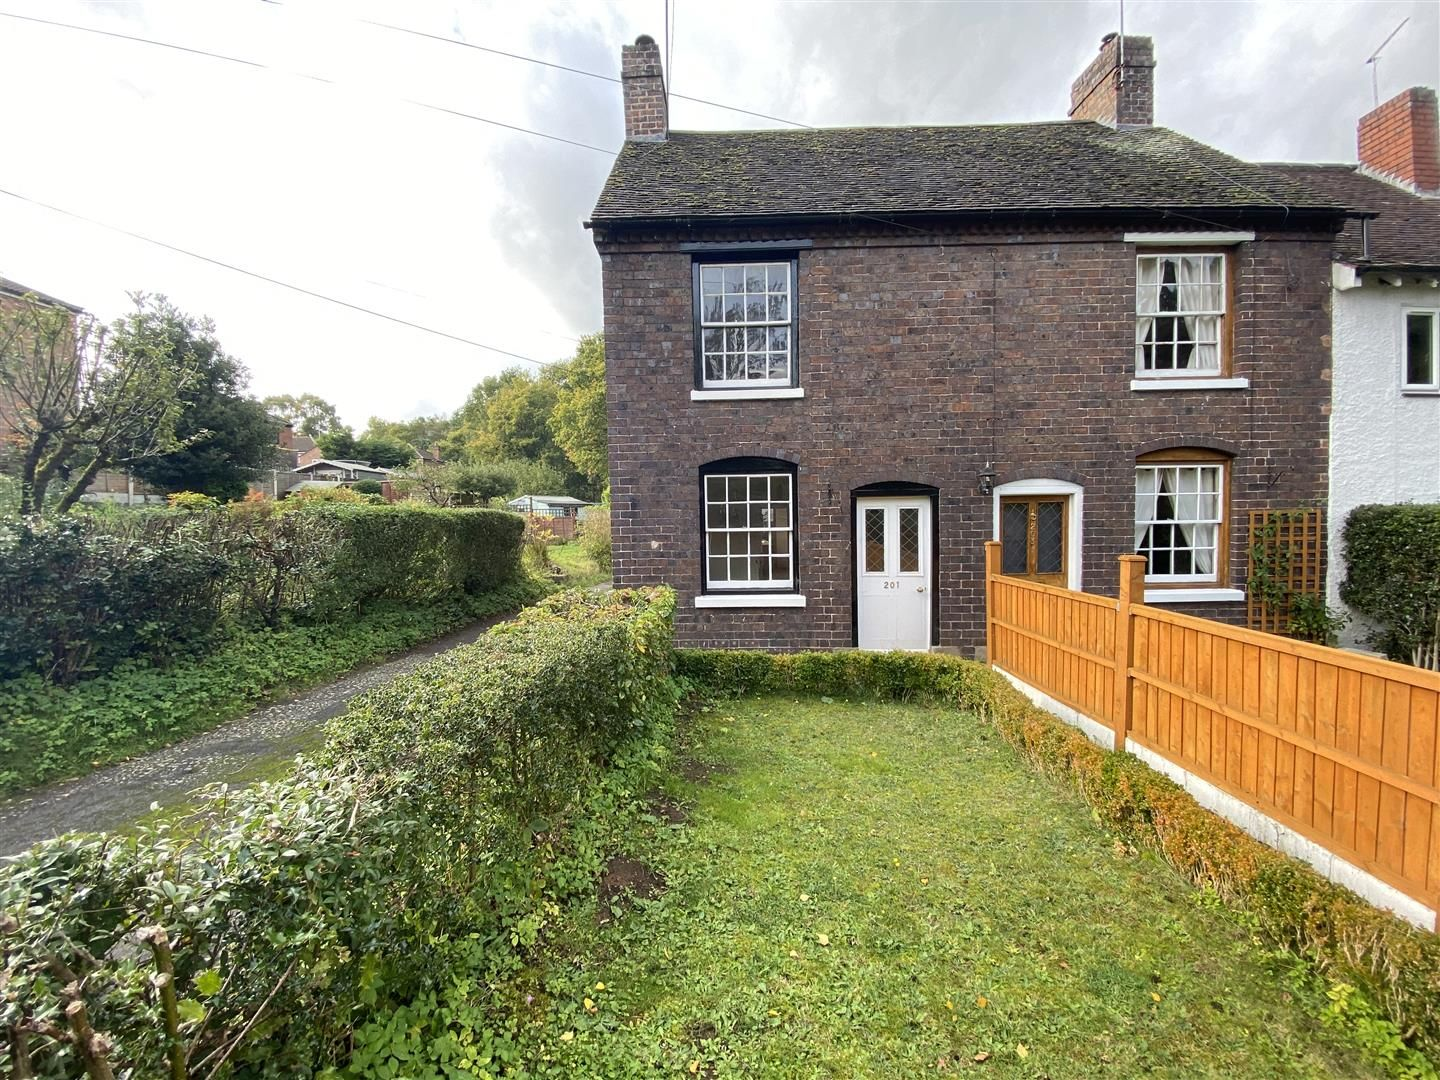 2 bed end-of-terrace for sale in Kinver 16